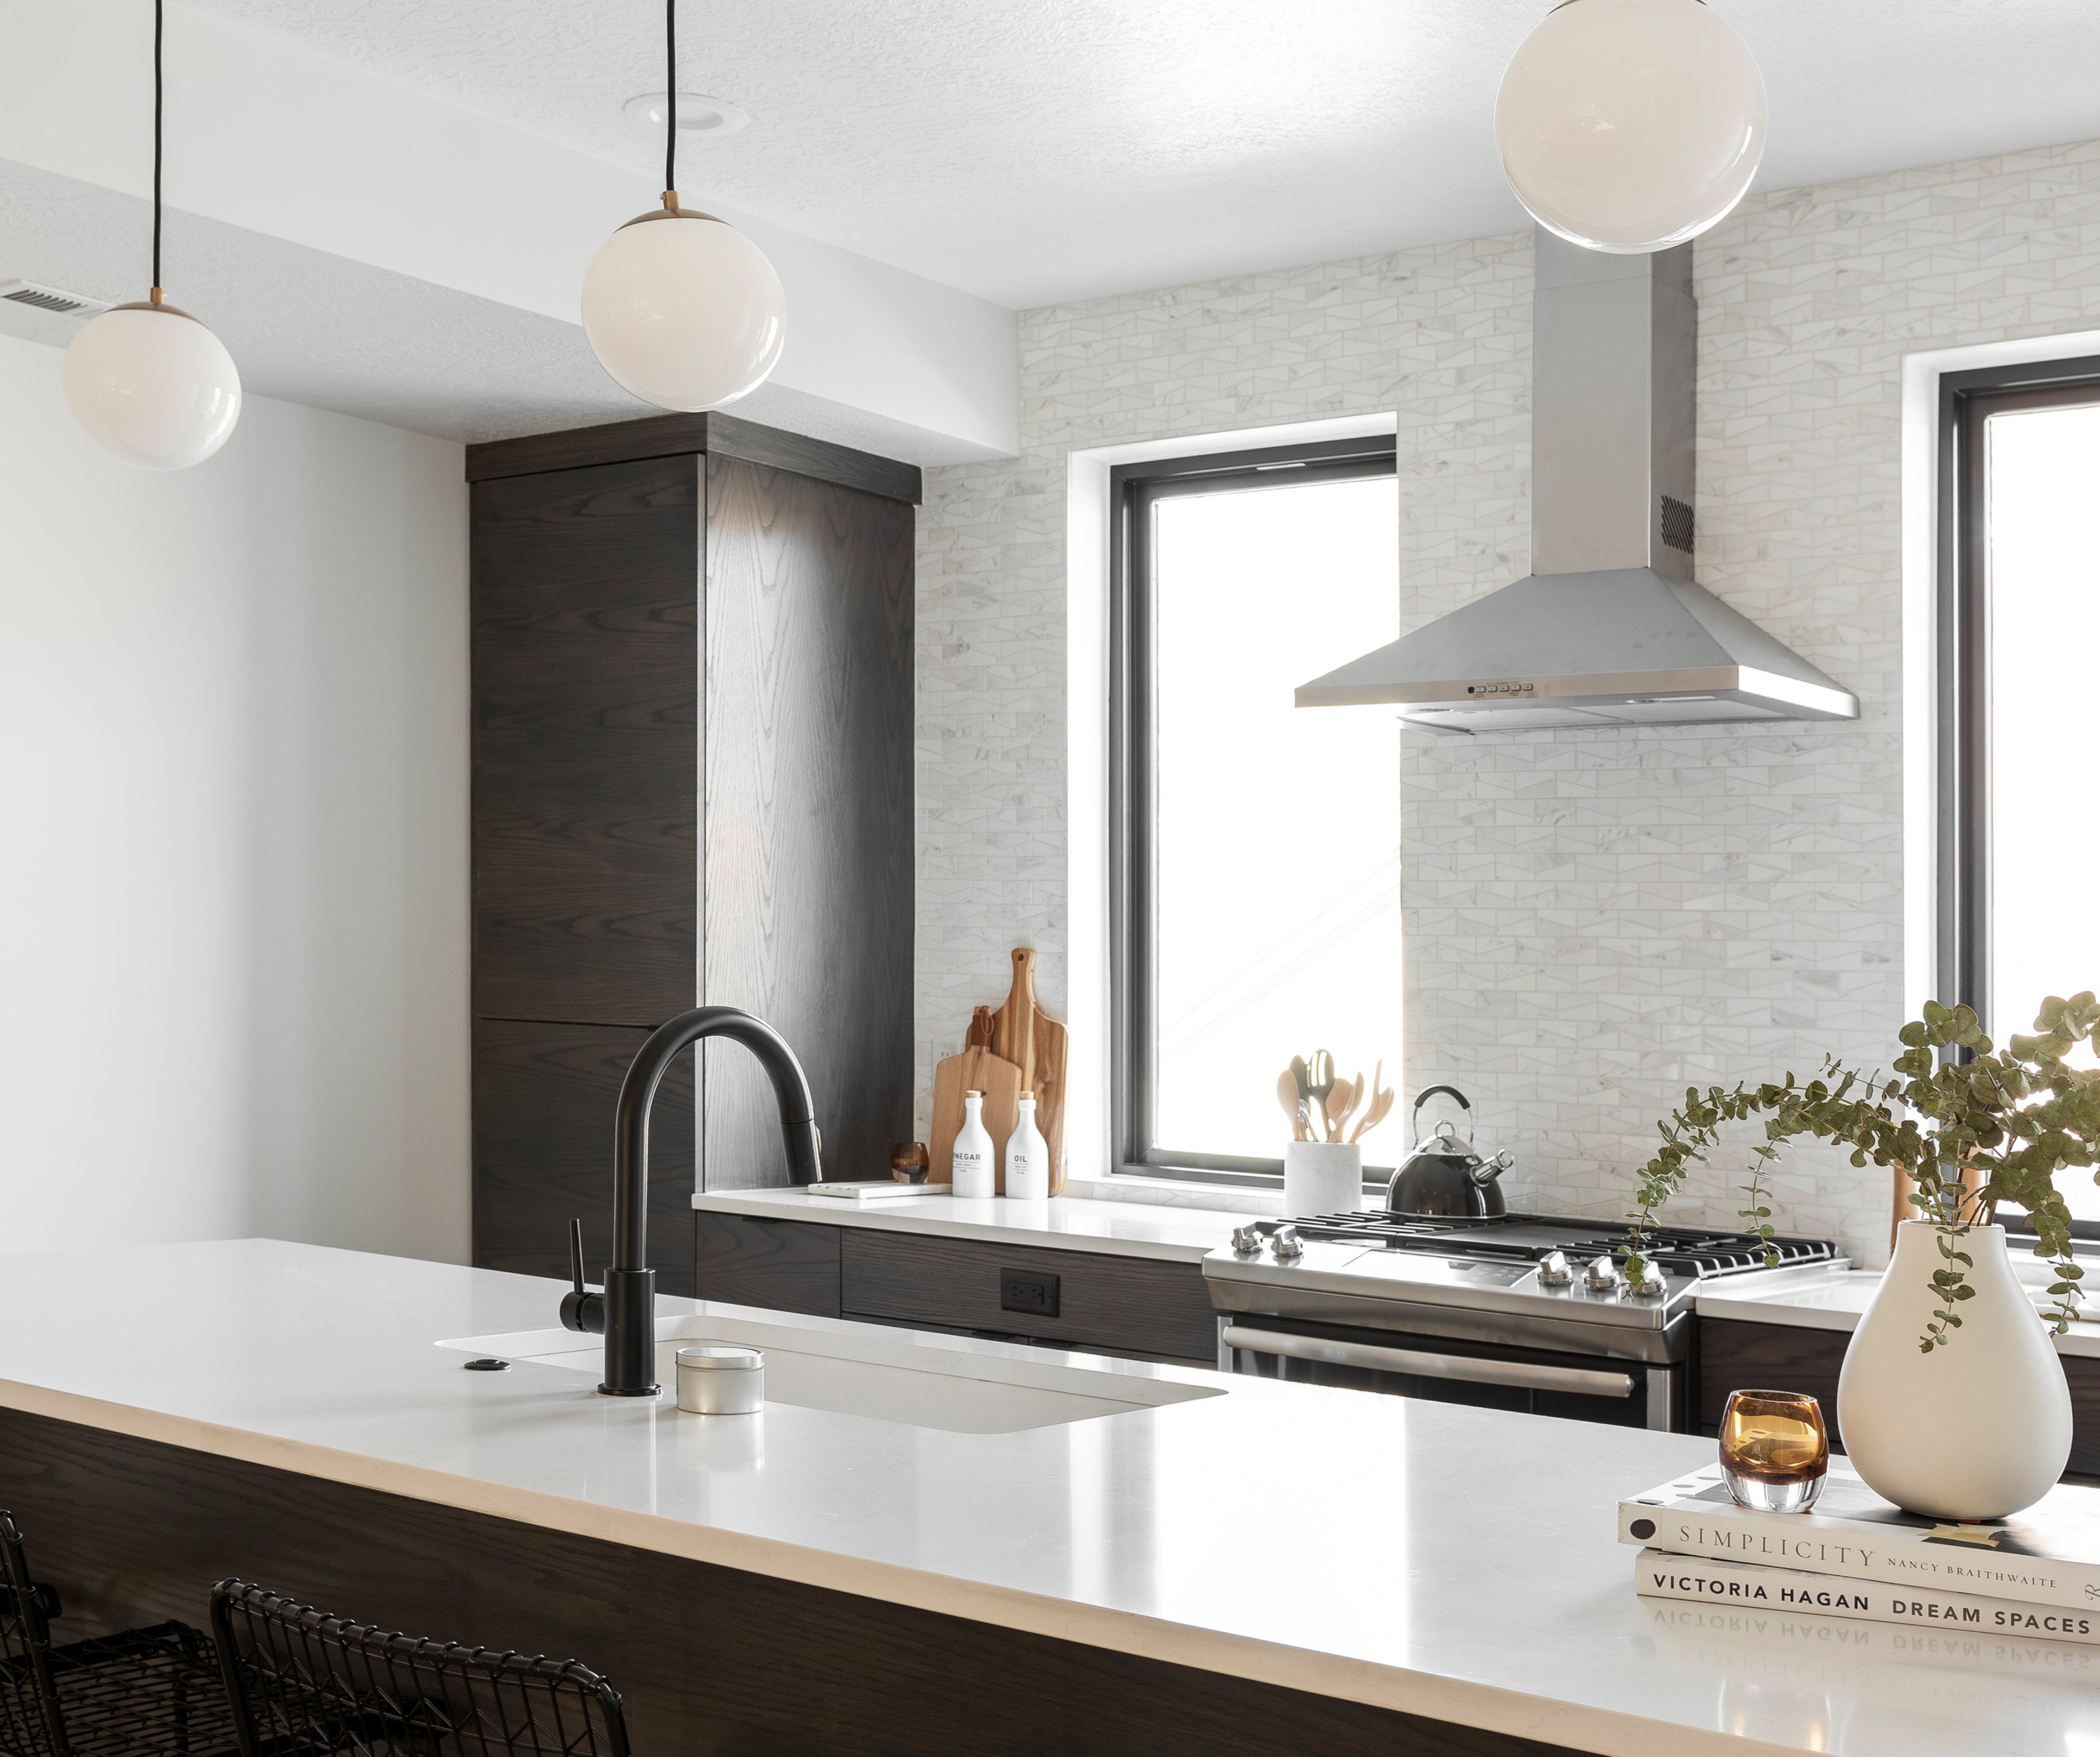 Inside the kitchen of a home by CW Urban